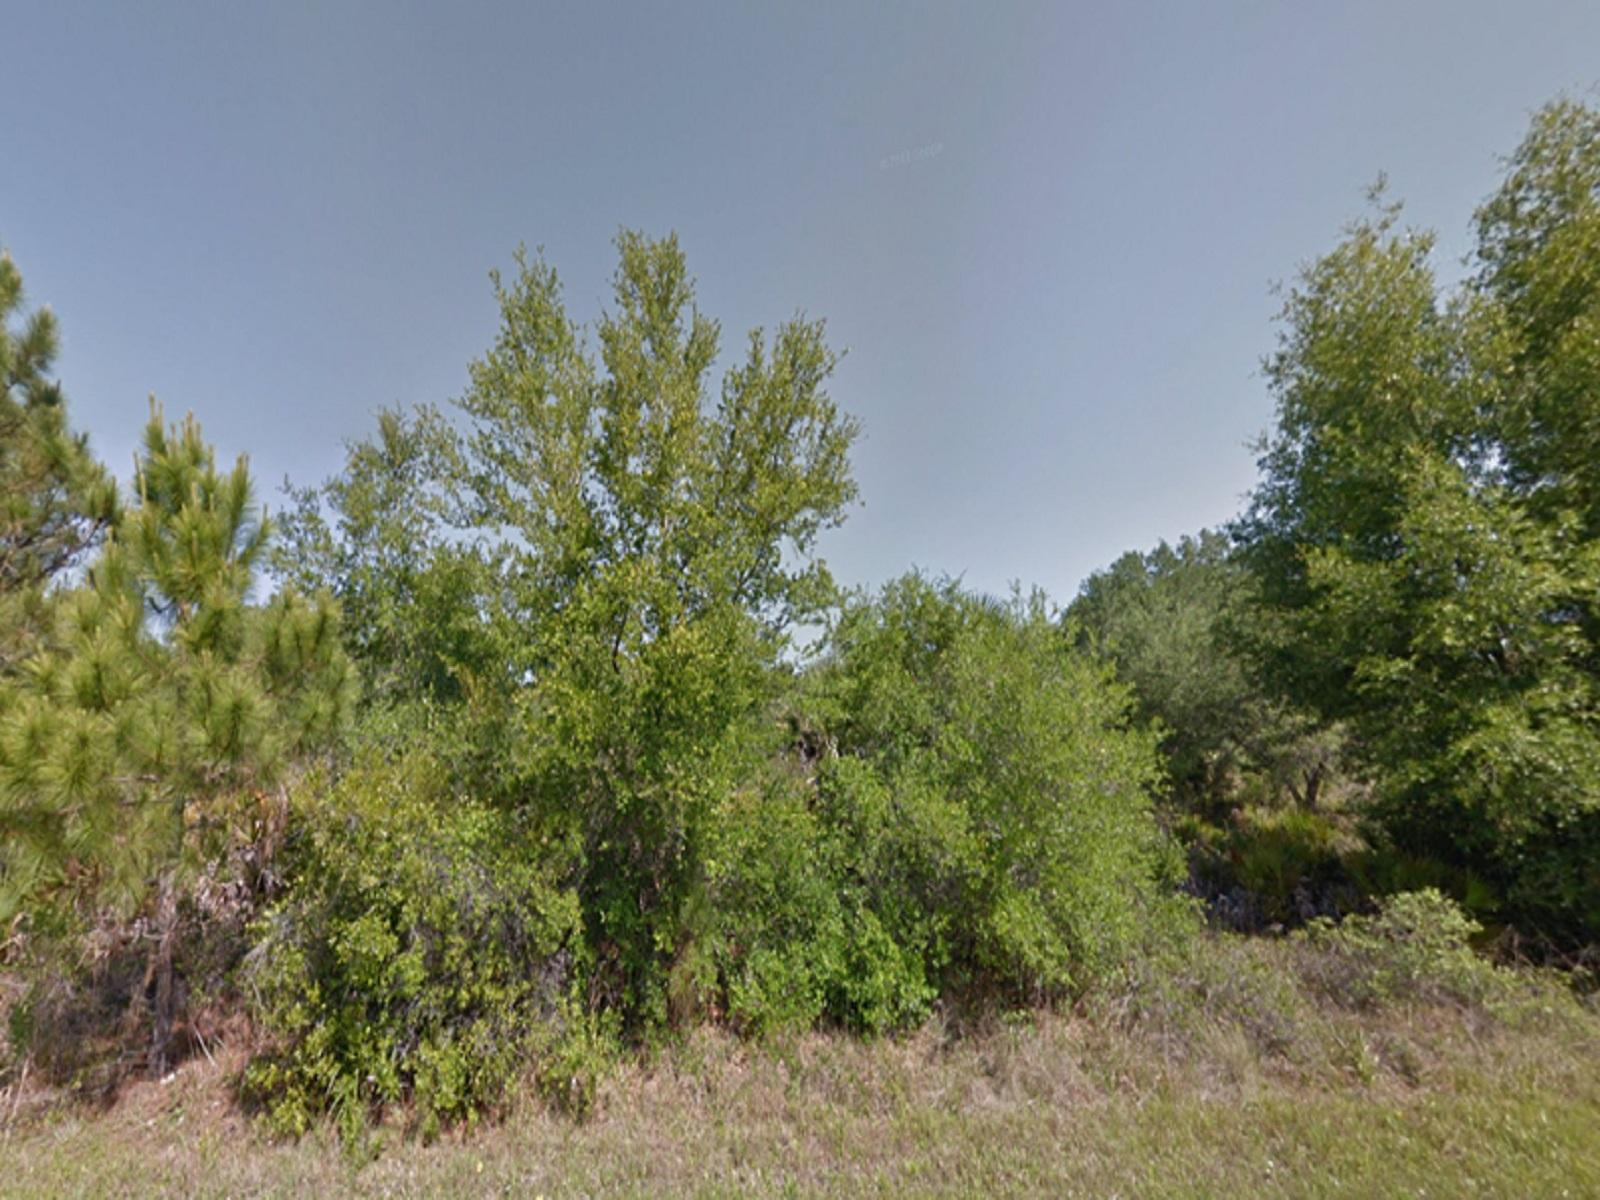 Property Image for 1533, 1541 & 1549 Rambler Terrace